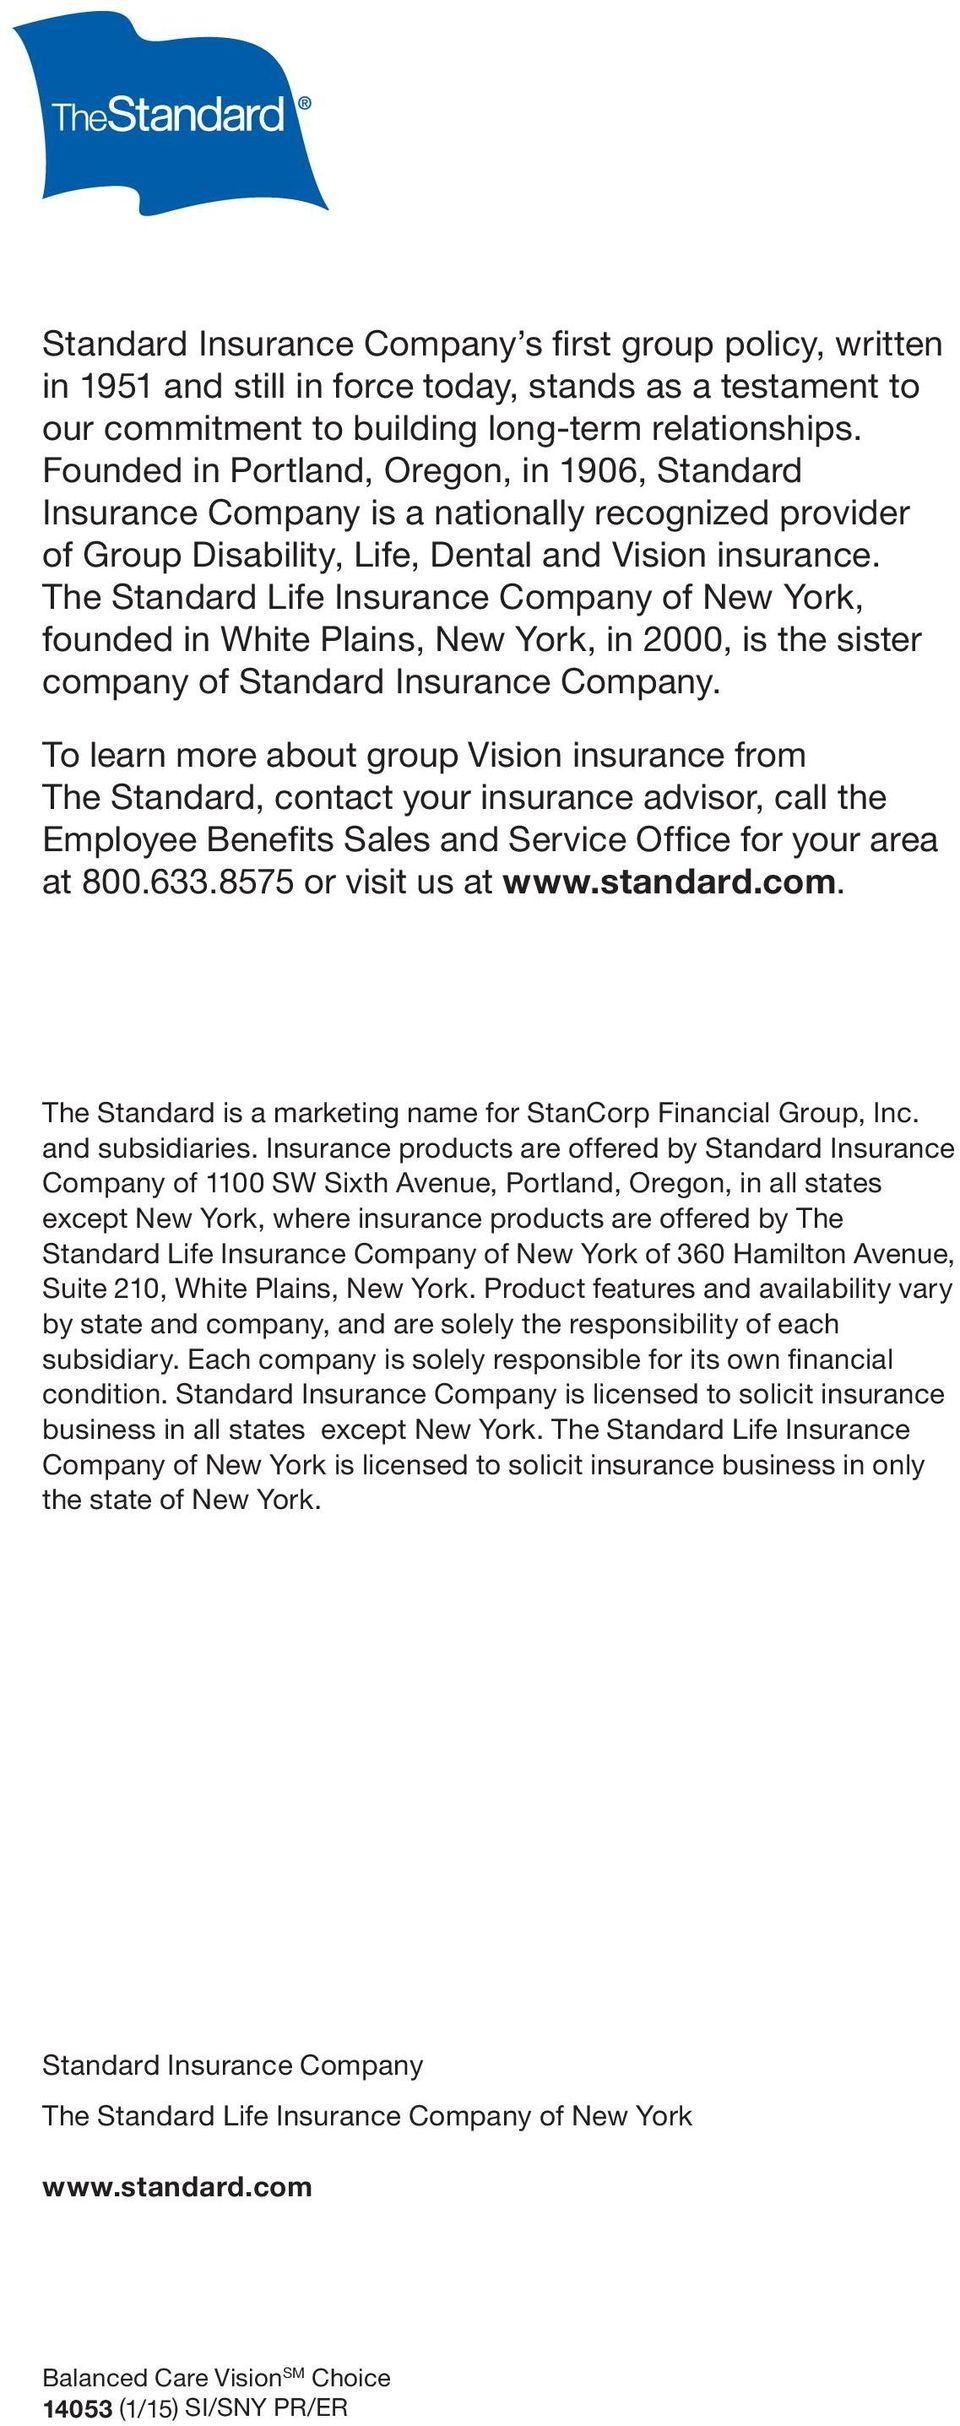 The Standard Life Insurance Company of New York, founded in White Plains, New York, in 2000, is the sister company of Standard Insurance Company.